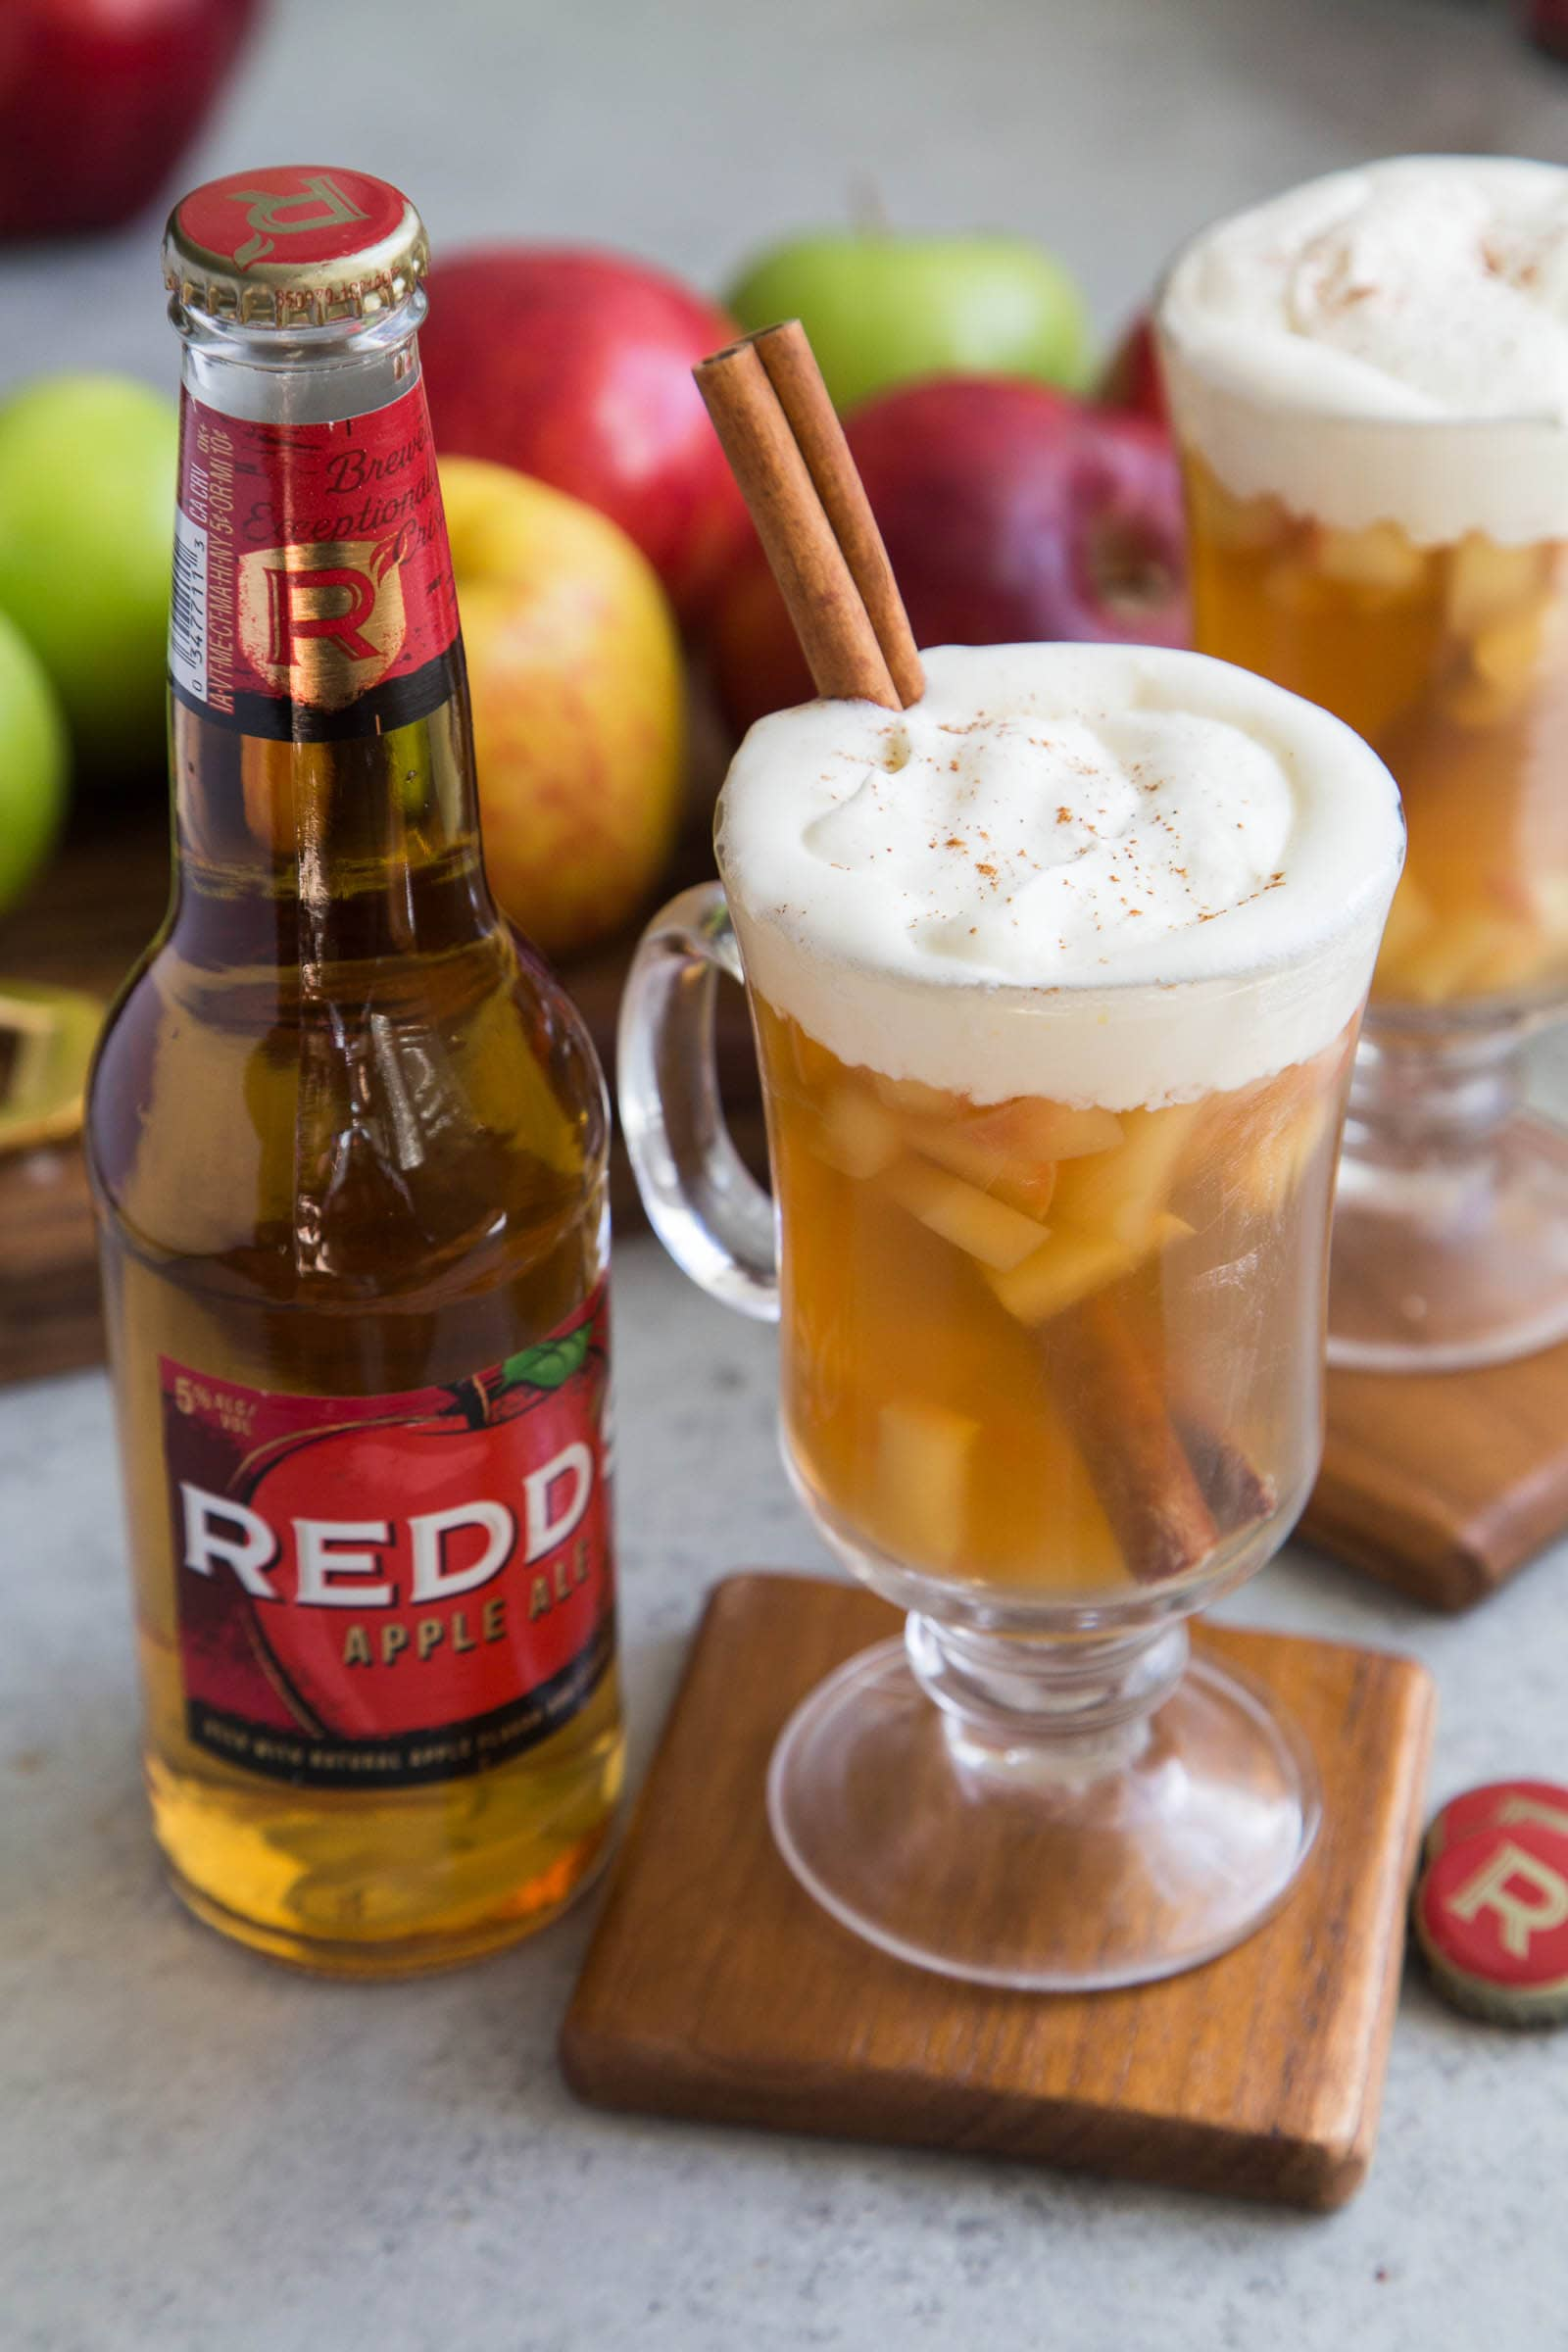 Redd's Apple Winter Warmer